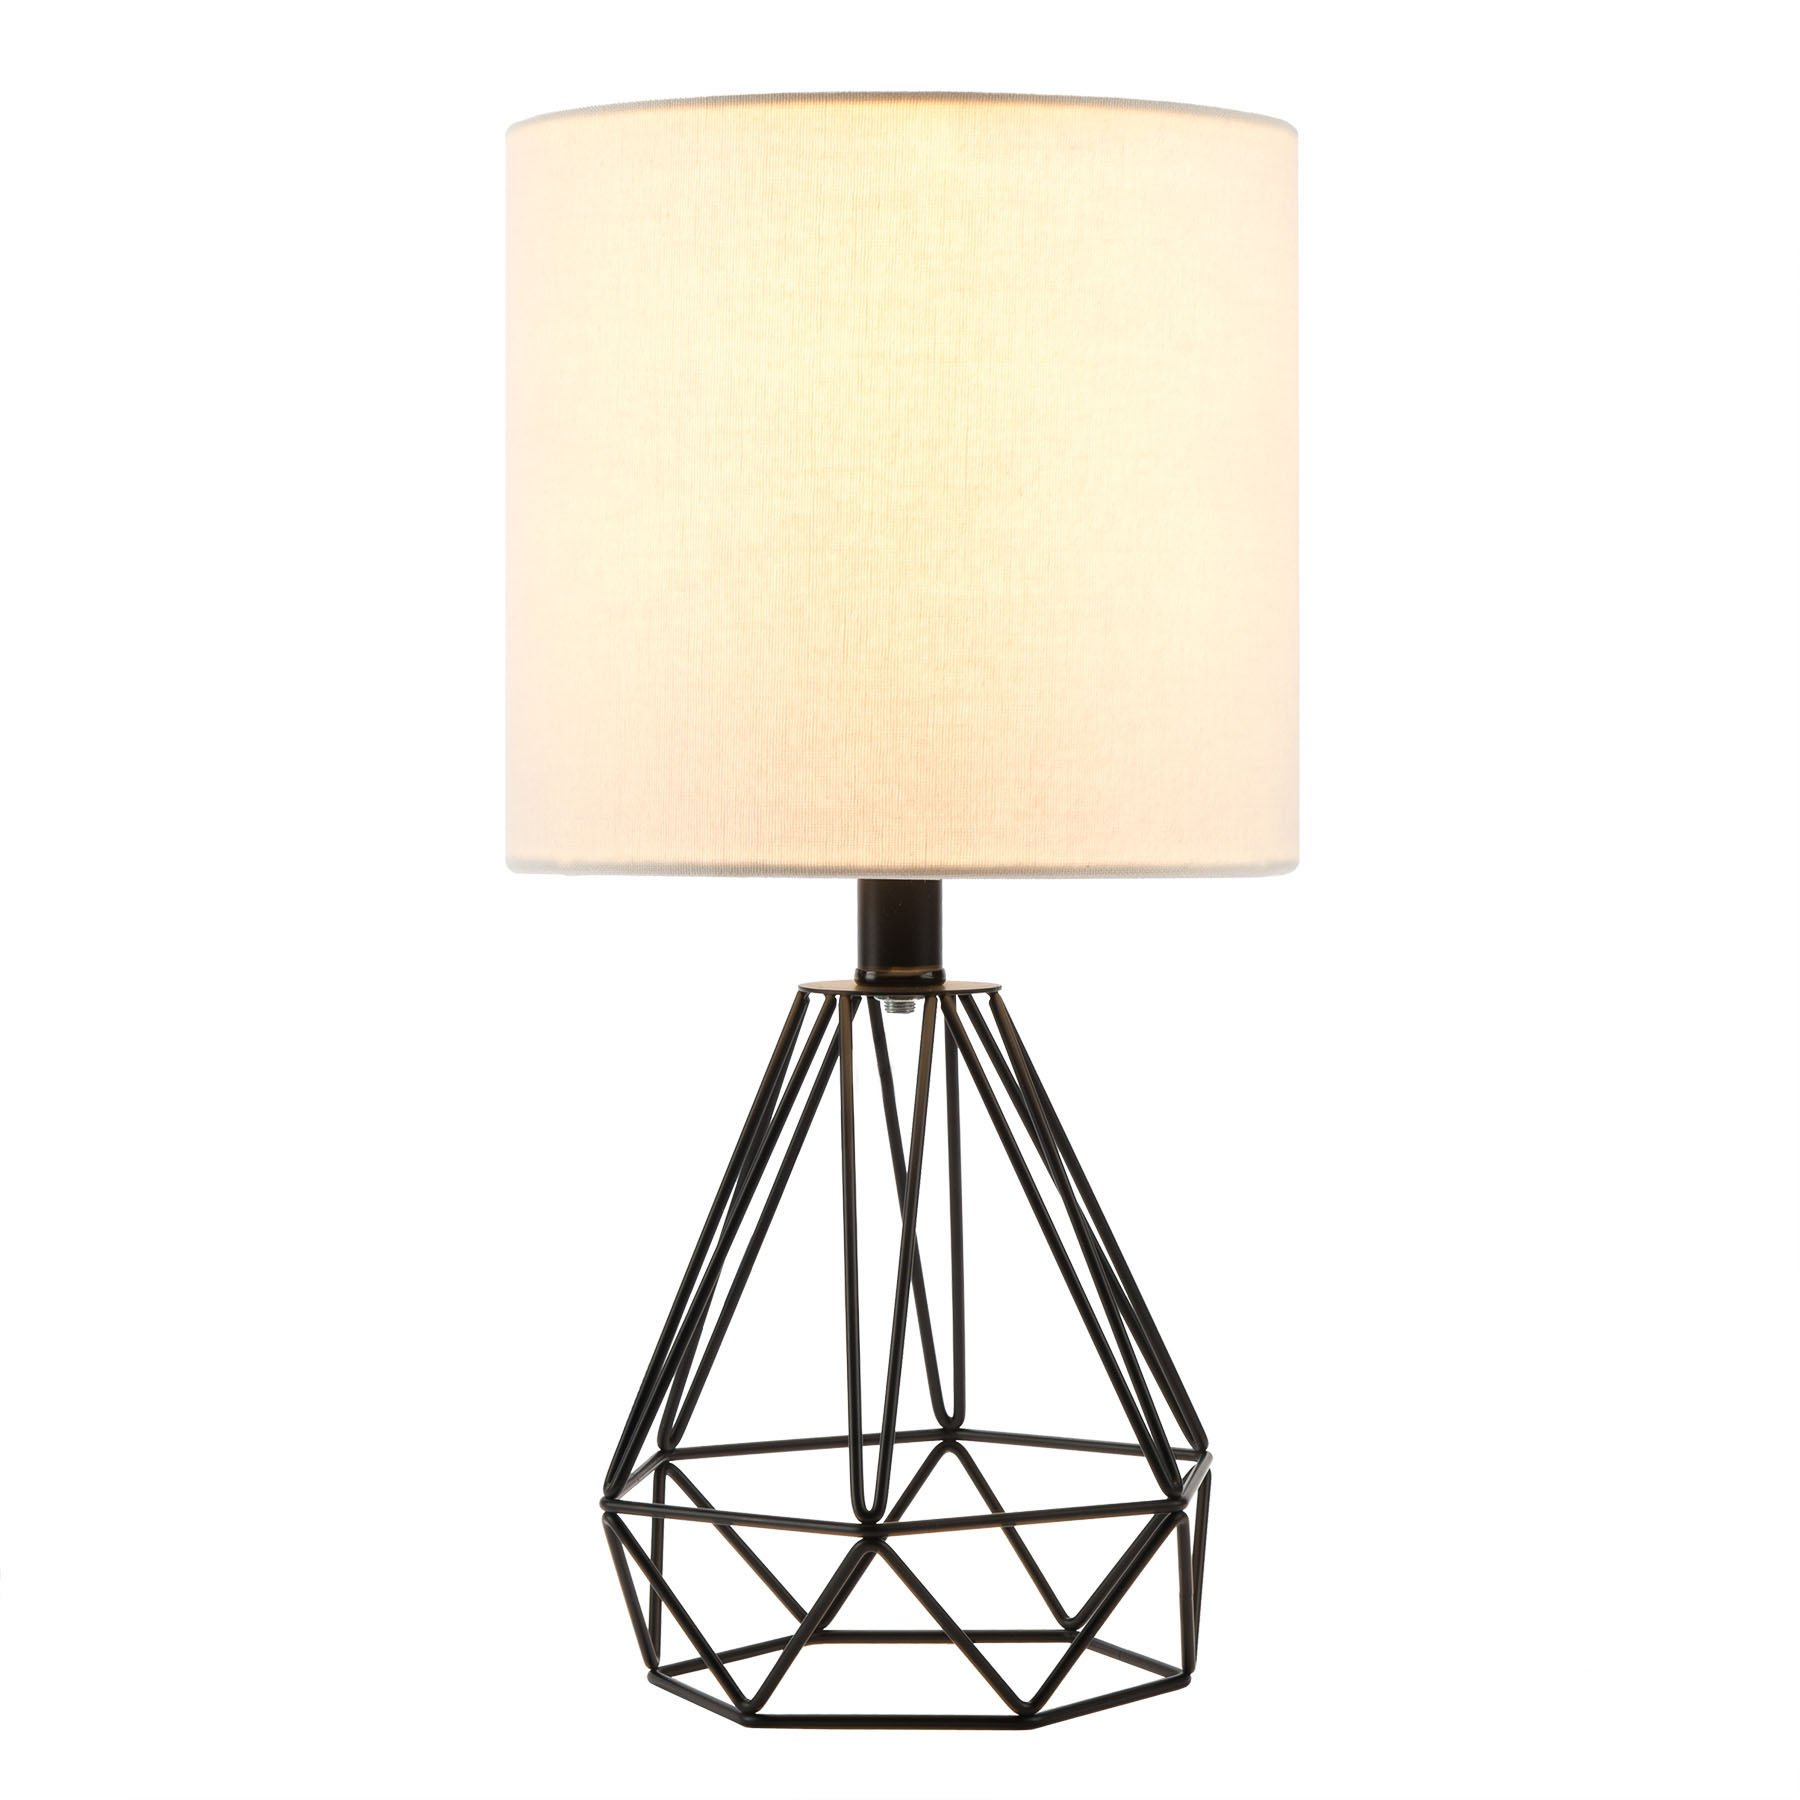 CO-Z Table Lamp with White Fabric Shade, Desk Lamp with Hollowed Out Base 18 inches in Height for Living Room Bedroom Dining Room(Black Base) by CO-Z